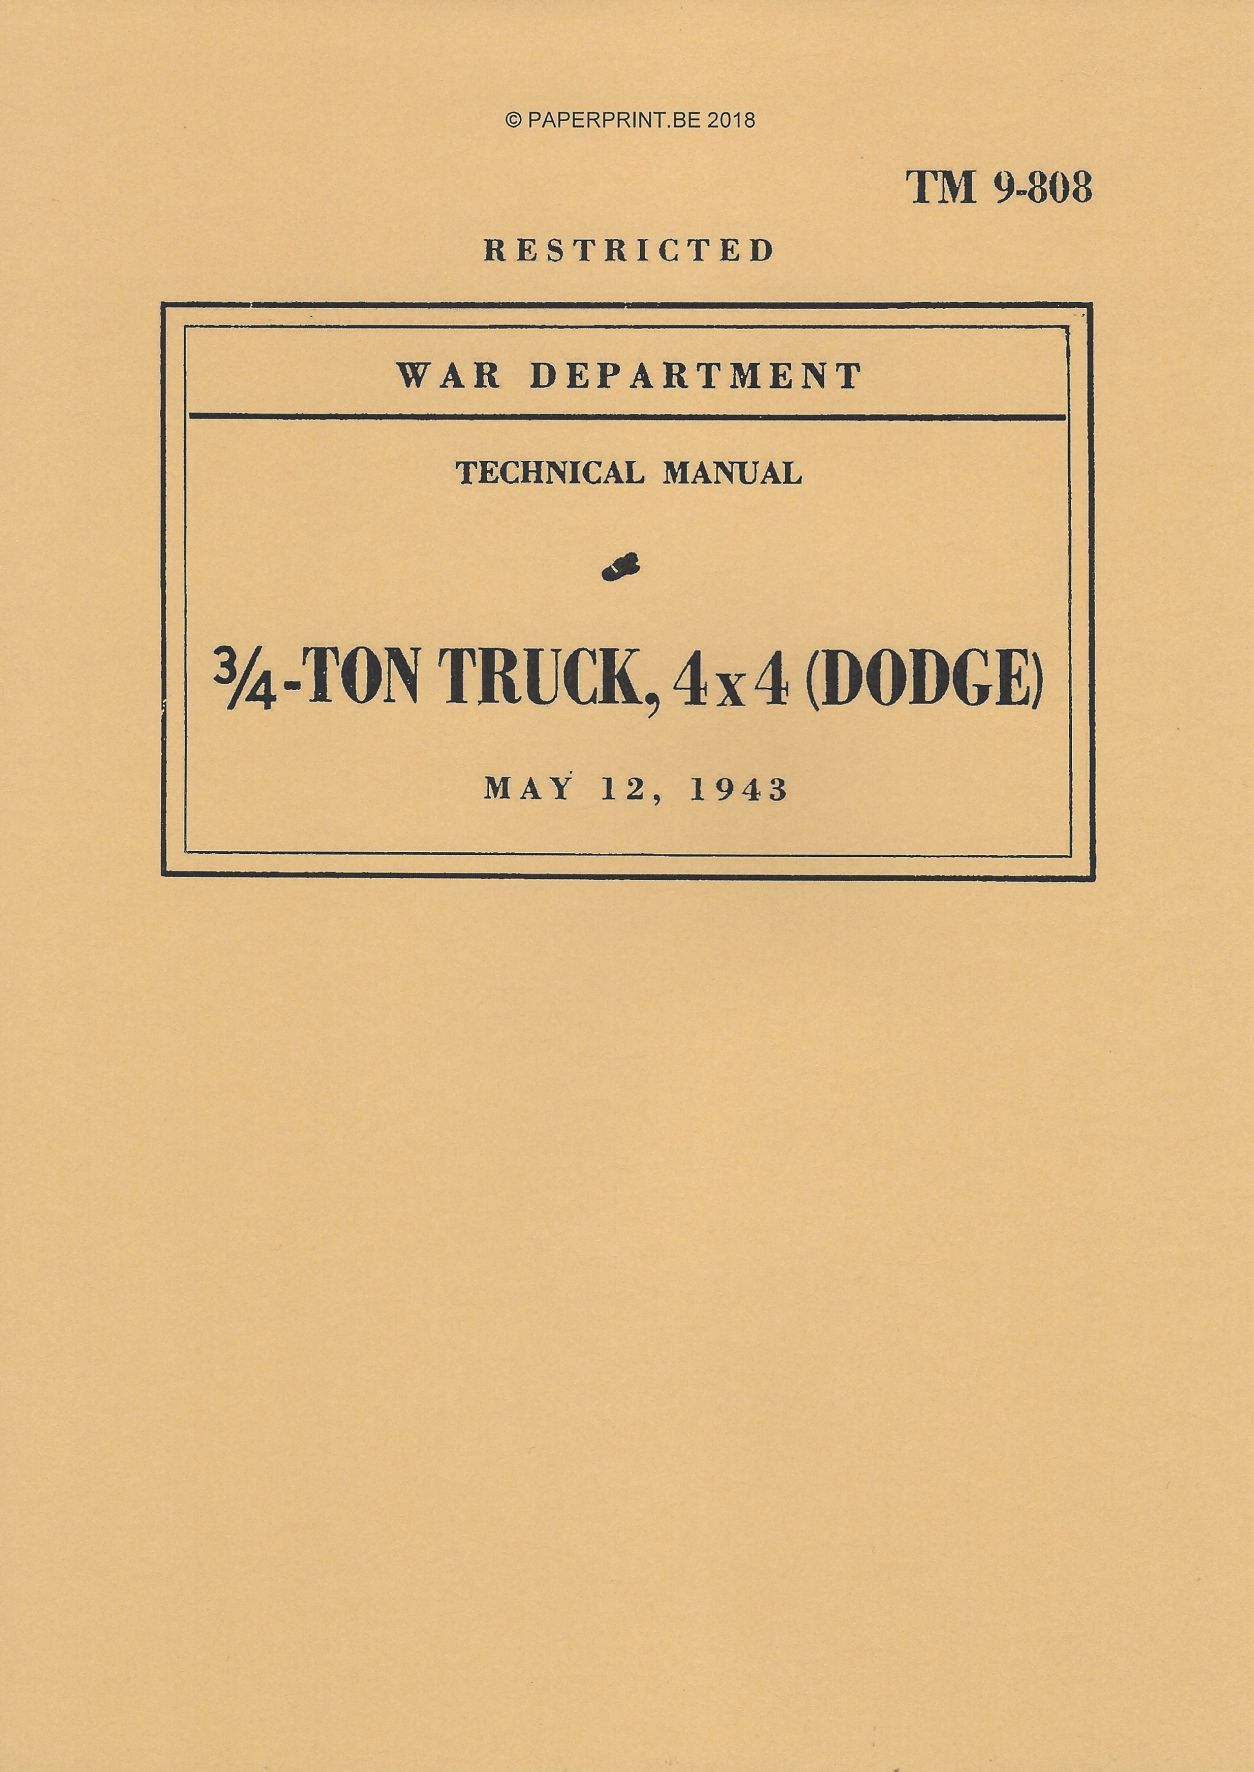 TM 9-808 1943 US TRUCK, ¾ TON 4x4 (DODGE)